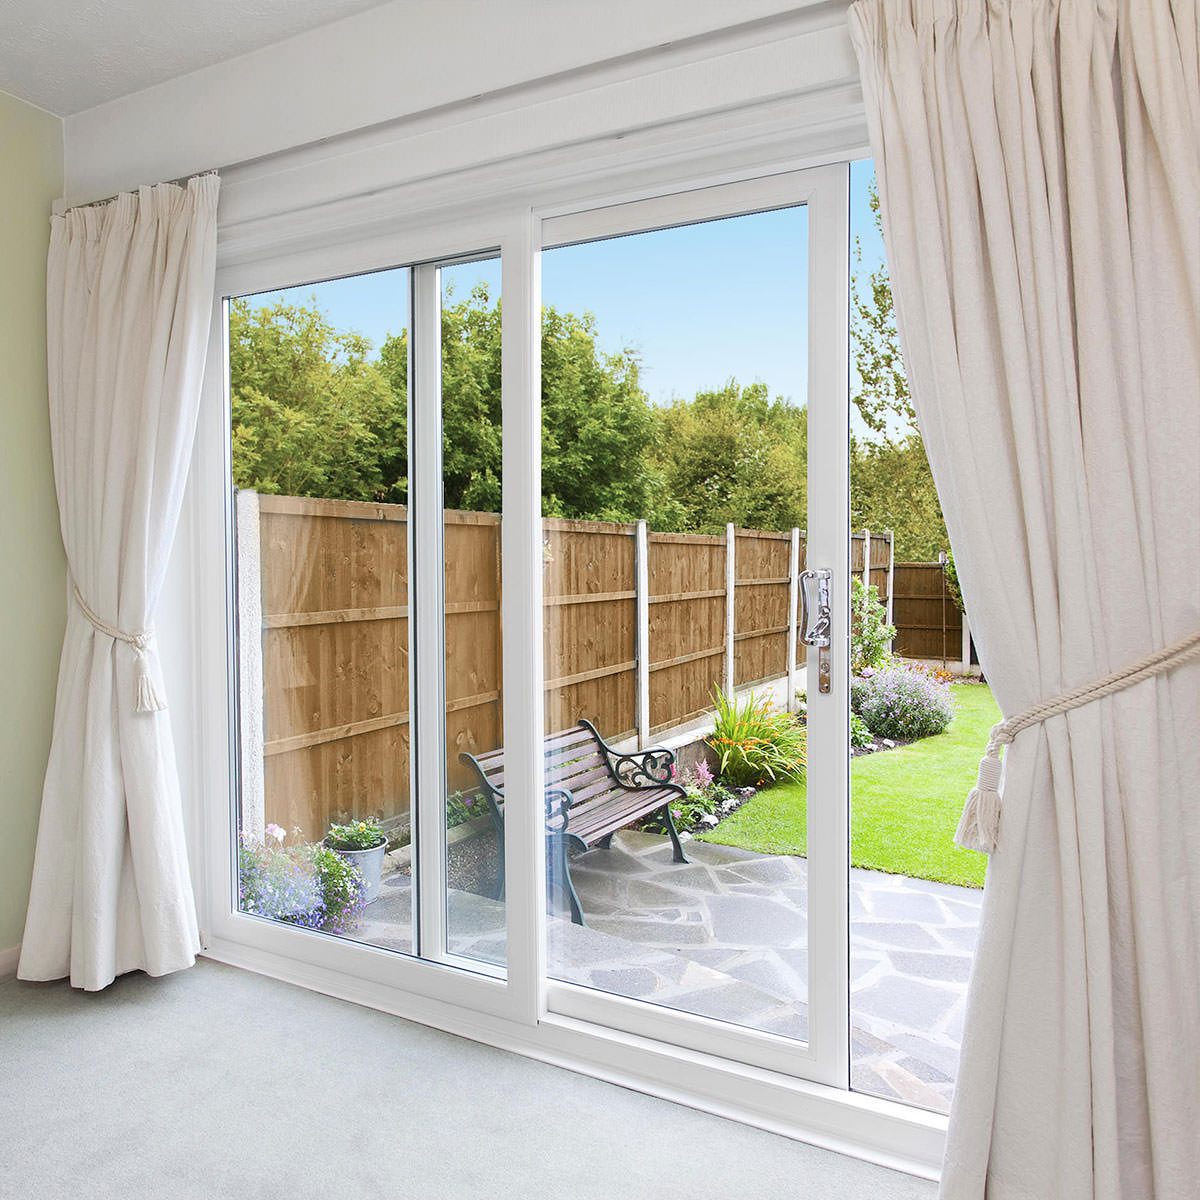 Patio Door Prices Sutton, London